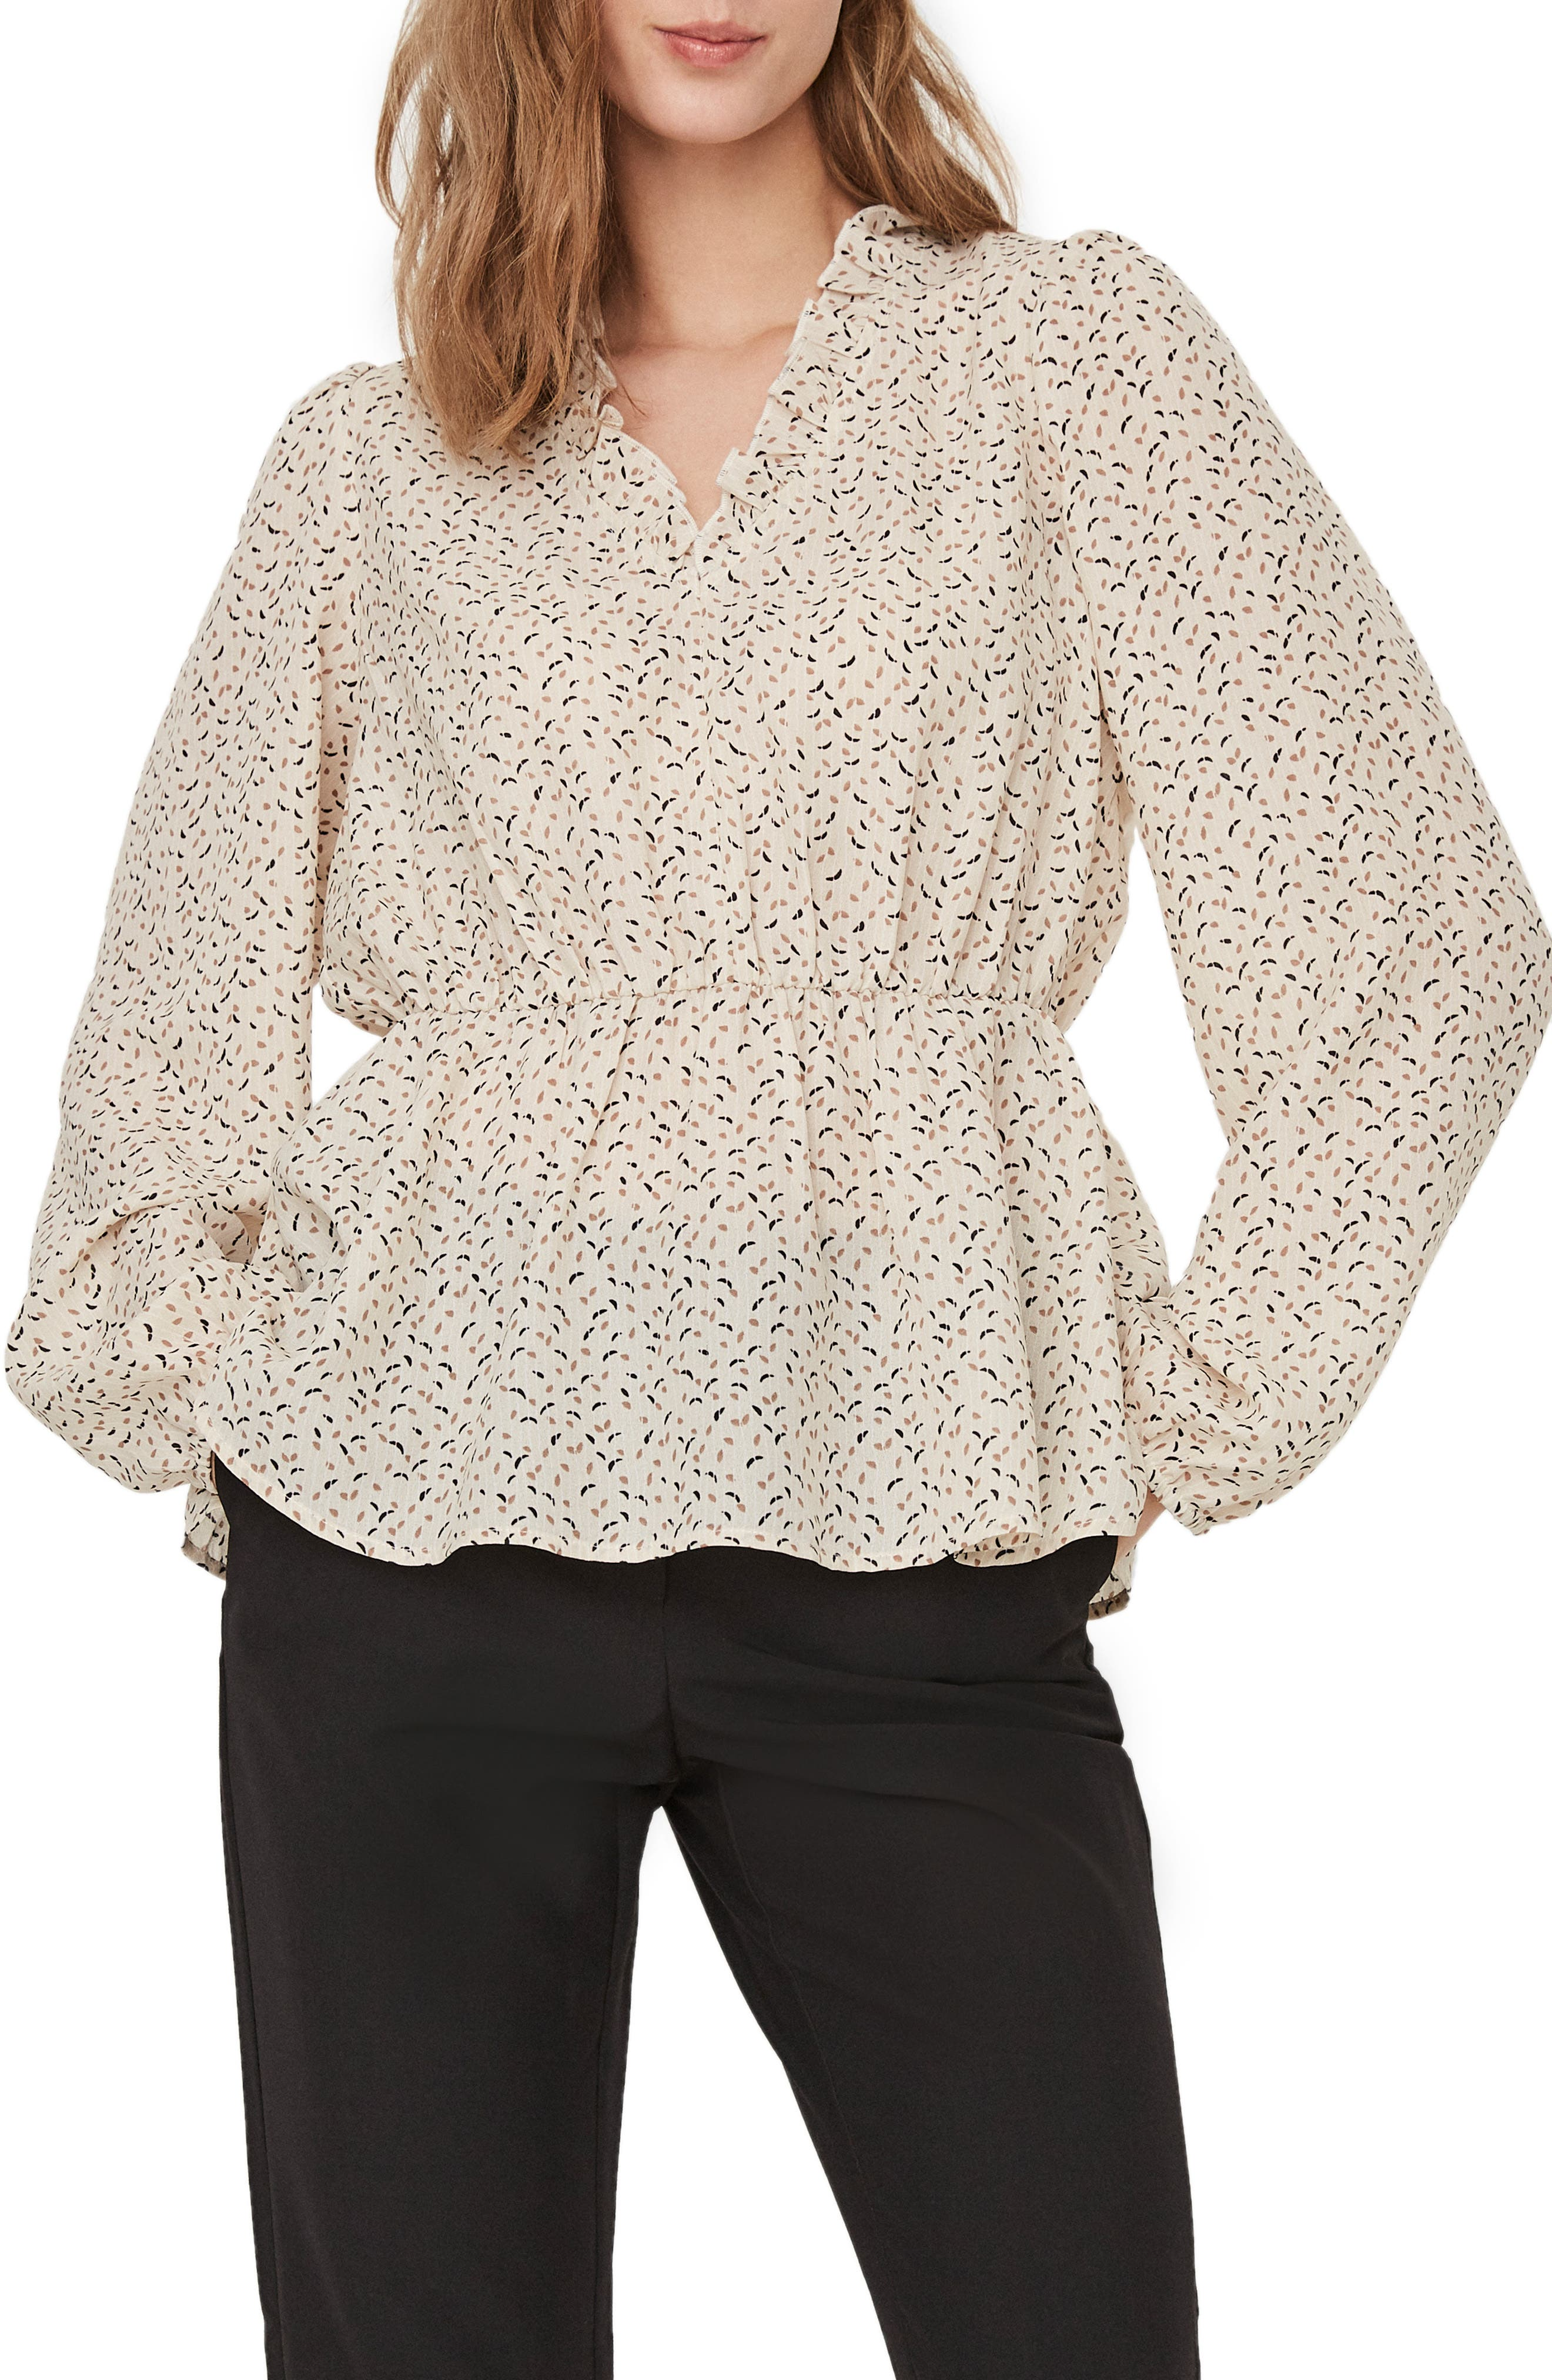 Image of AWARE BY VERO MODA Printed Frill Neck Peplum Blouse